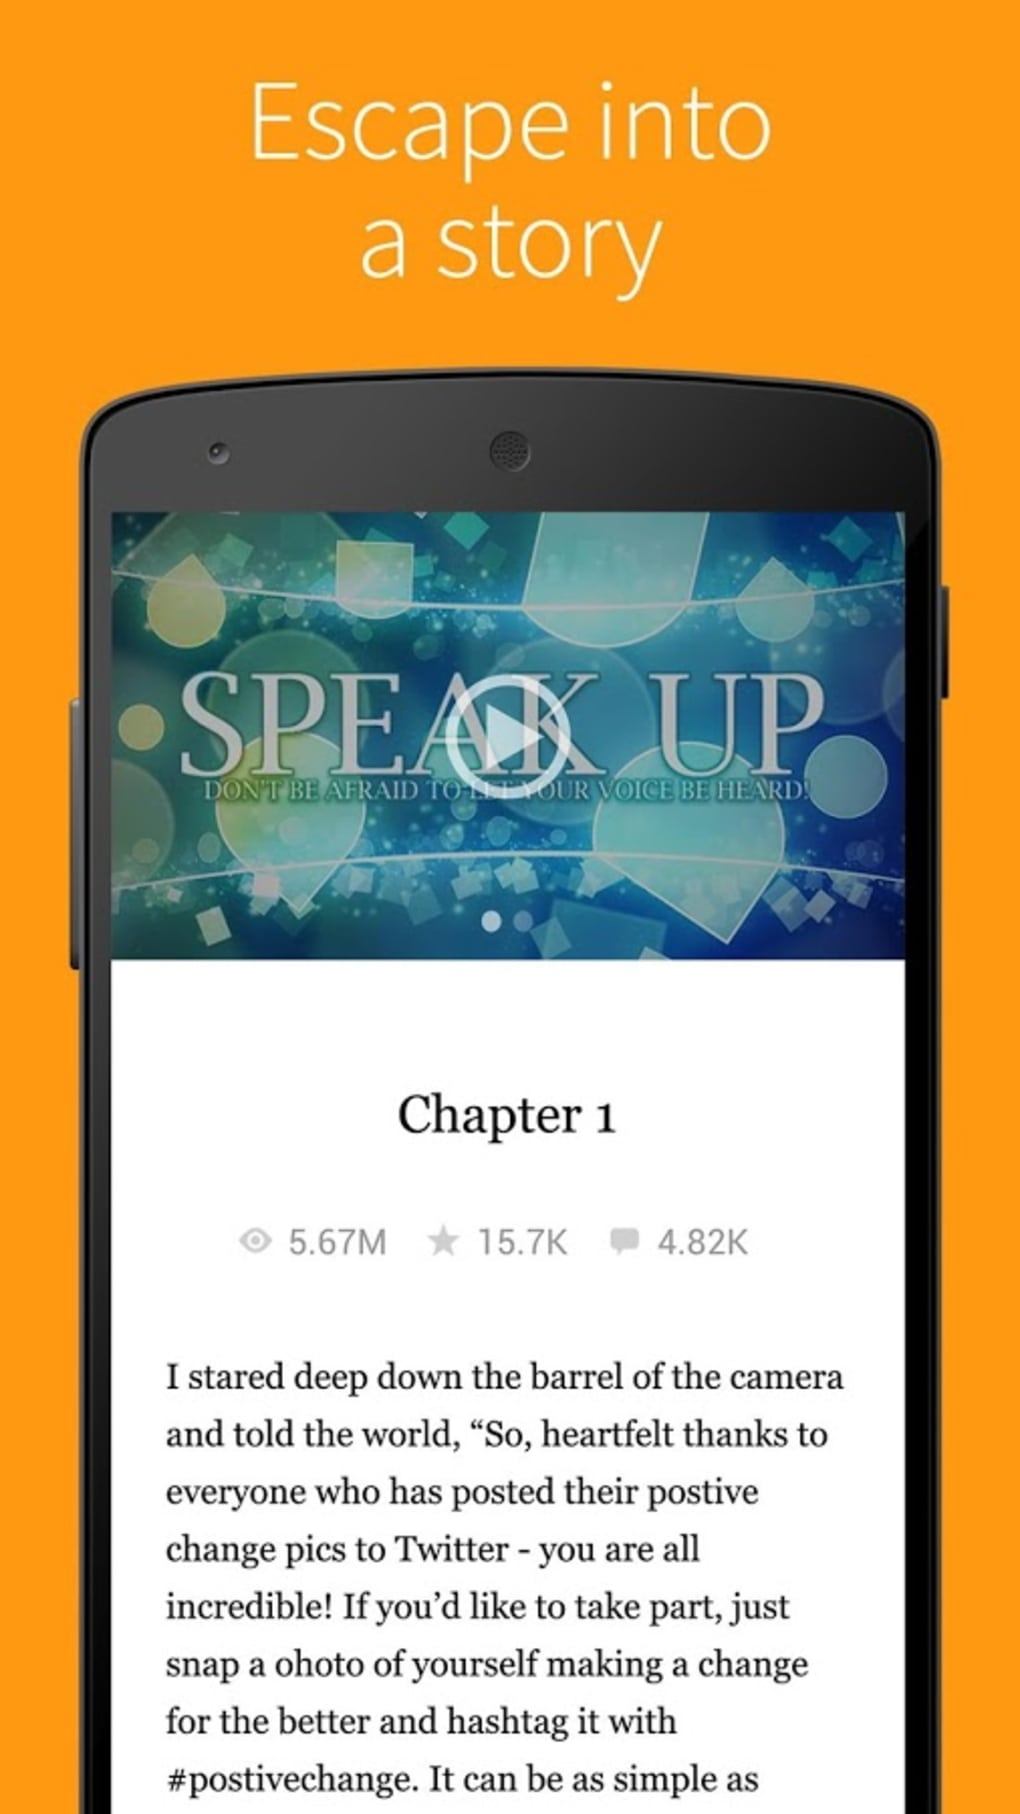 Ebook Tagalog Stories For Mobile